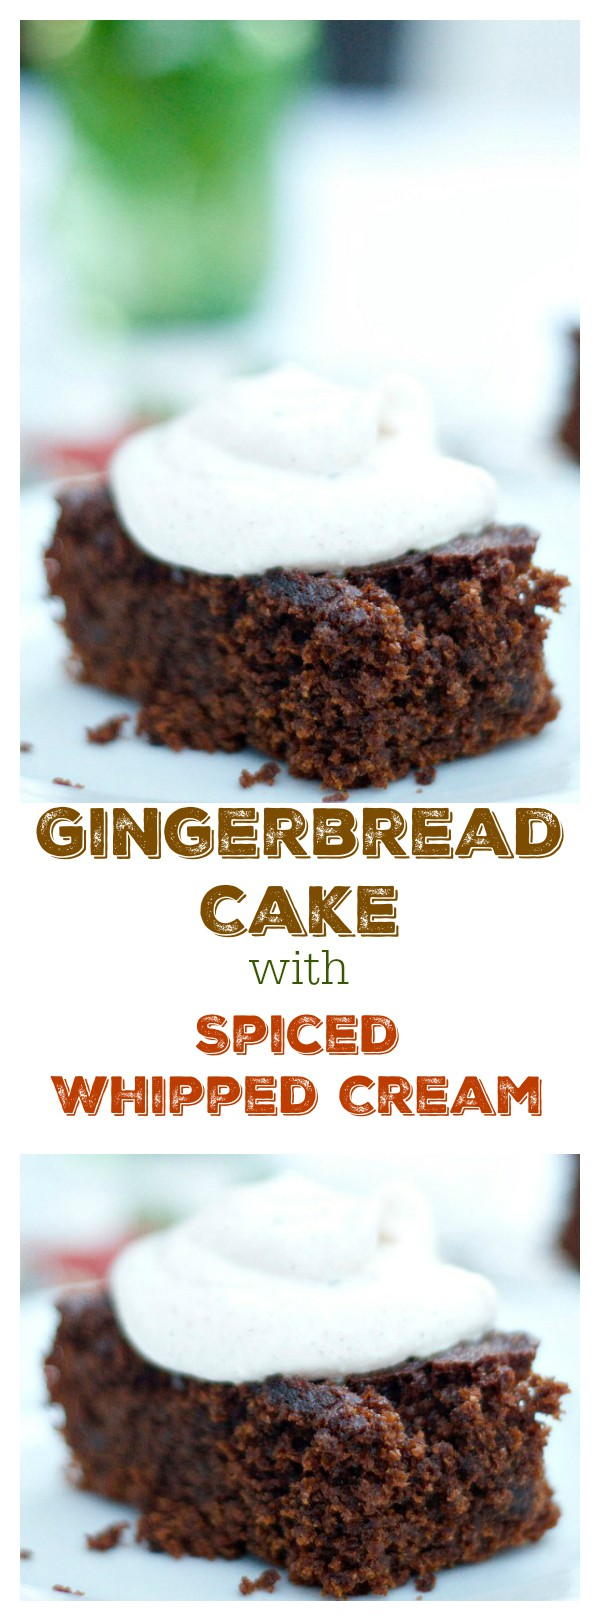 Light a fire, and have some friends over to enjoy a harvest-themed, special holiday dinner party with Gingerbread Cake with Spiced Whipped Cream for dessert!